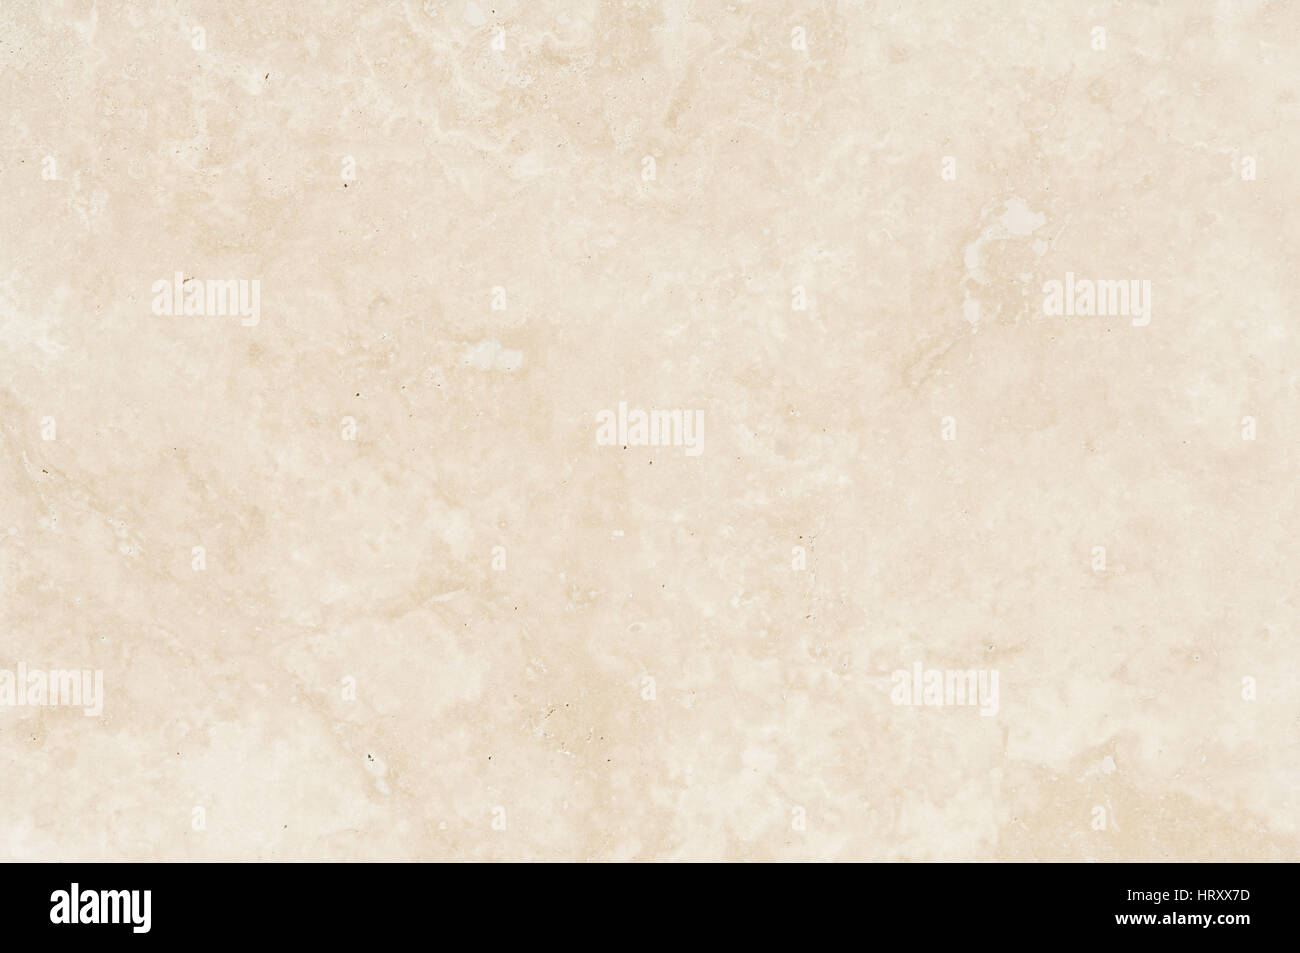 Seamless Beige Marble Textured Stone Surface As Background